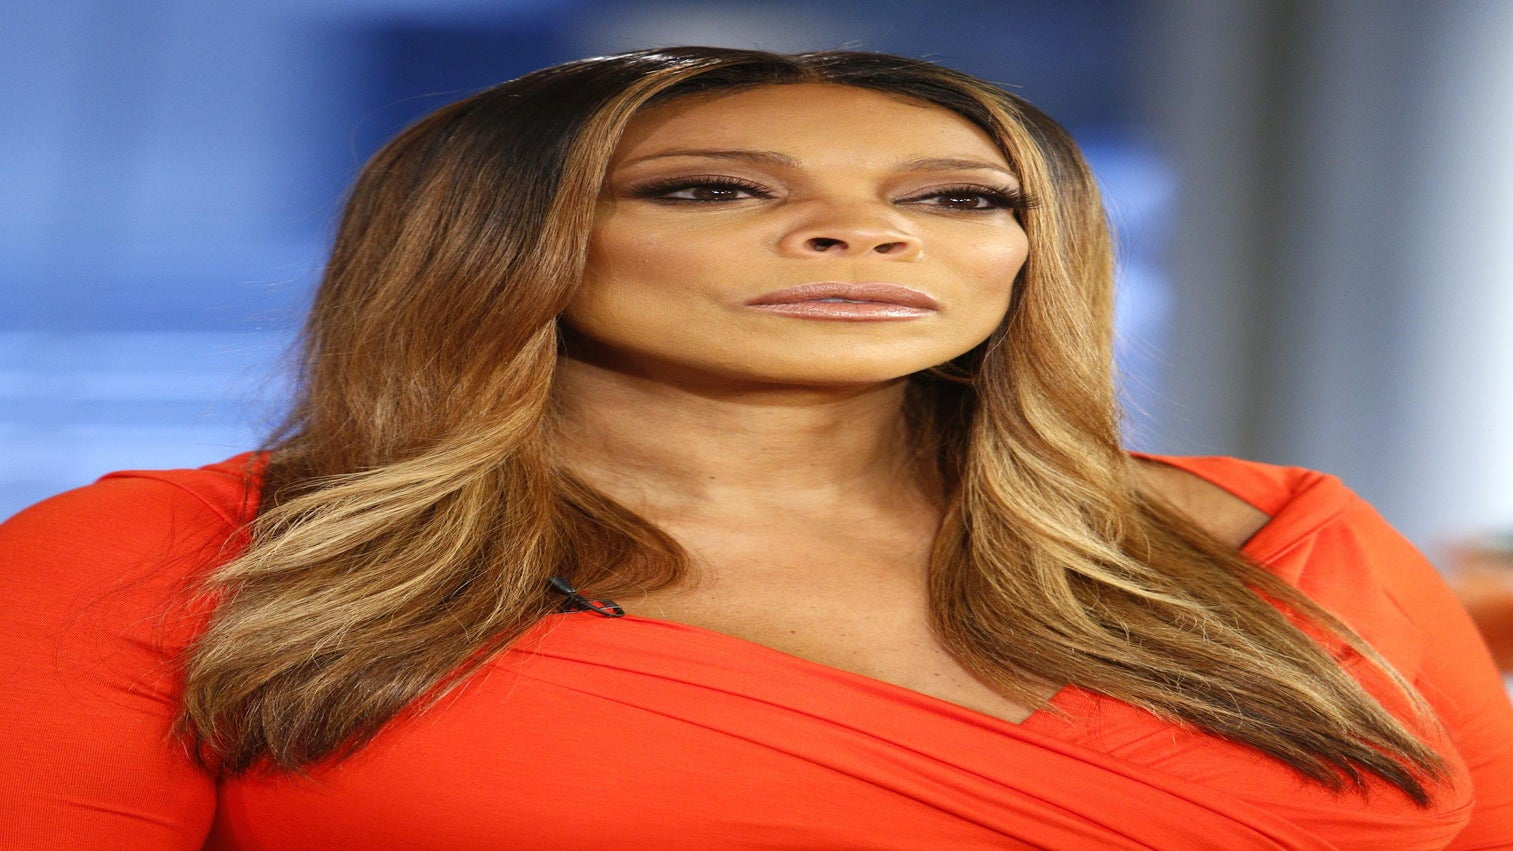 Wendy Williams Tears Up Over Chris Brown's Drugs Issues: 'This is serious'